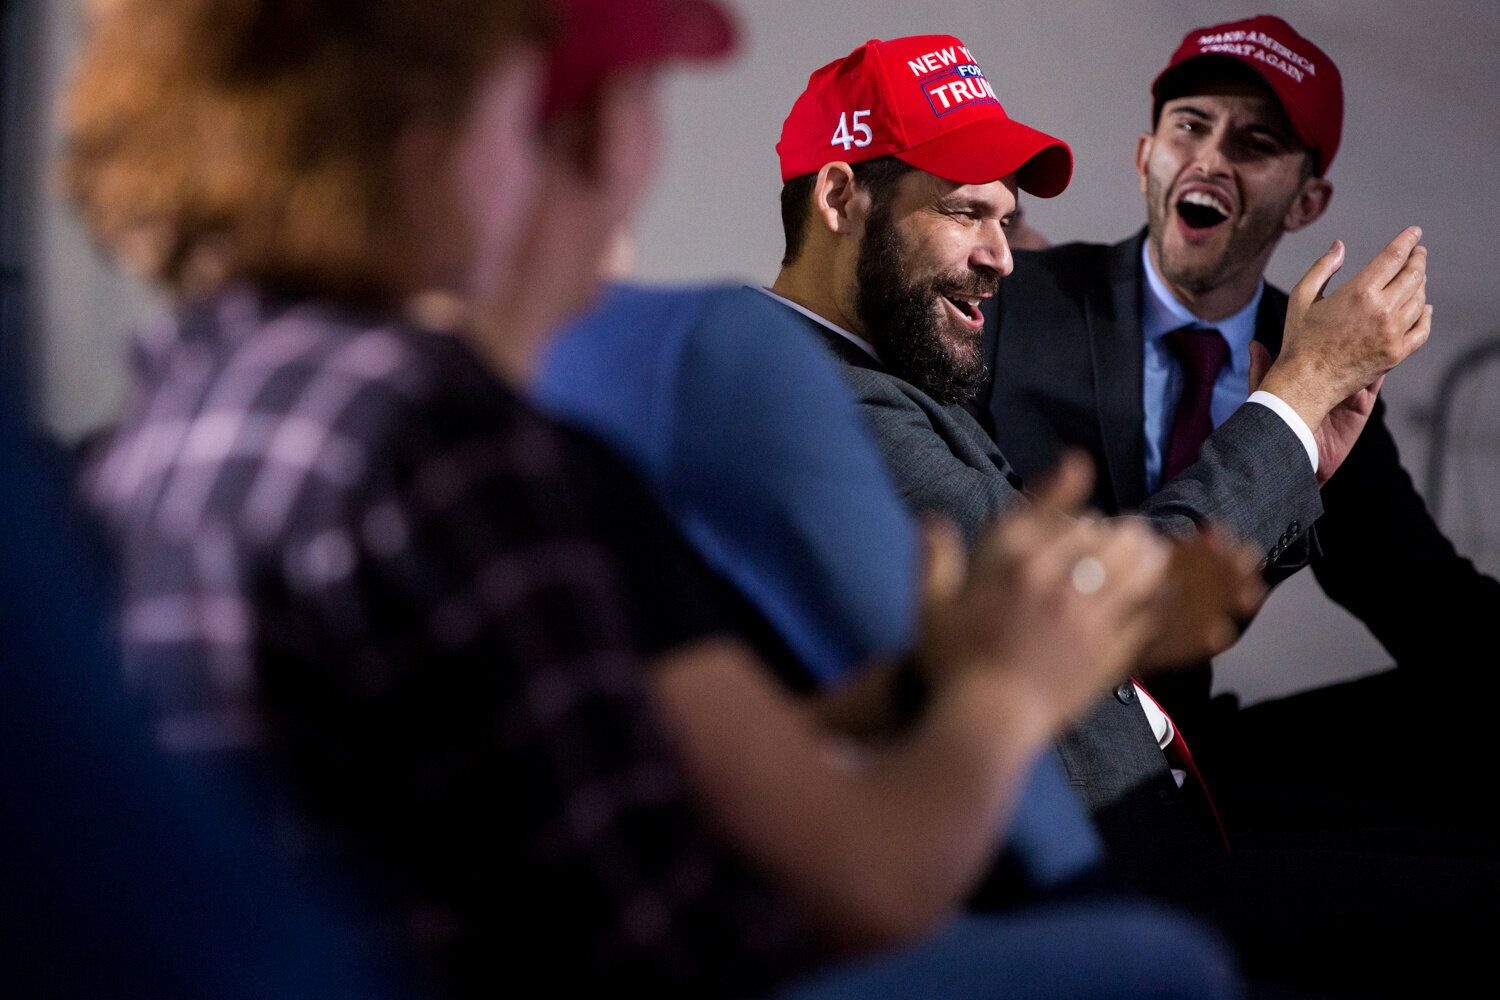 Mike Gee, center, applauds for the president while watching the debate stream in Lititz.